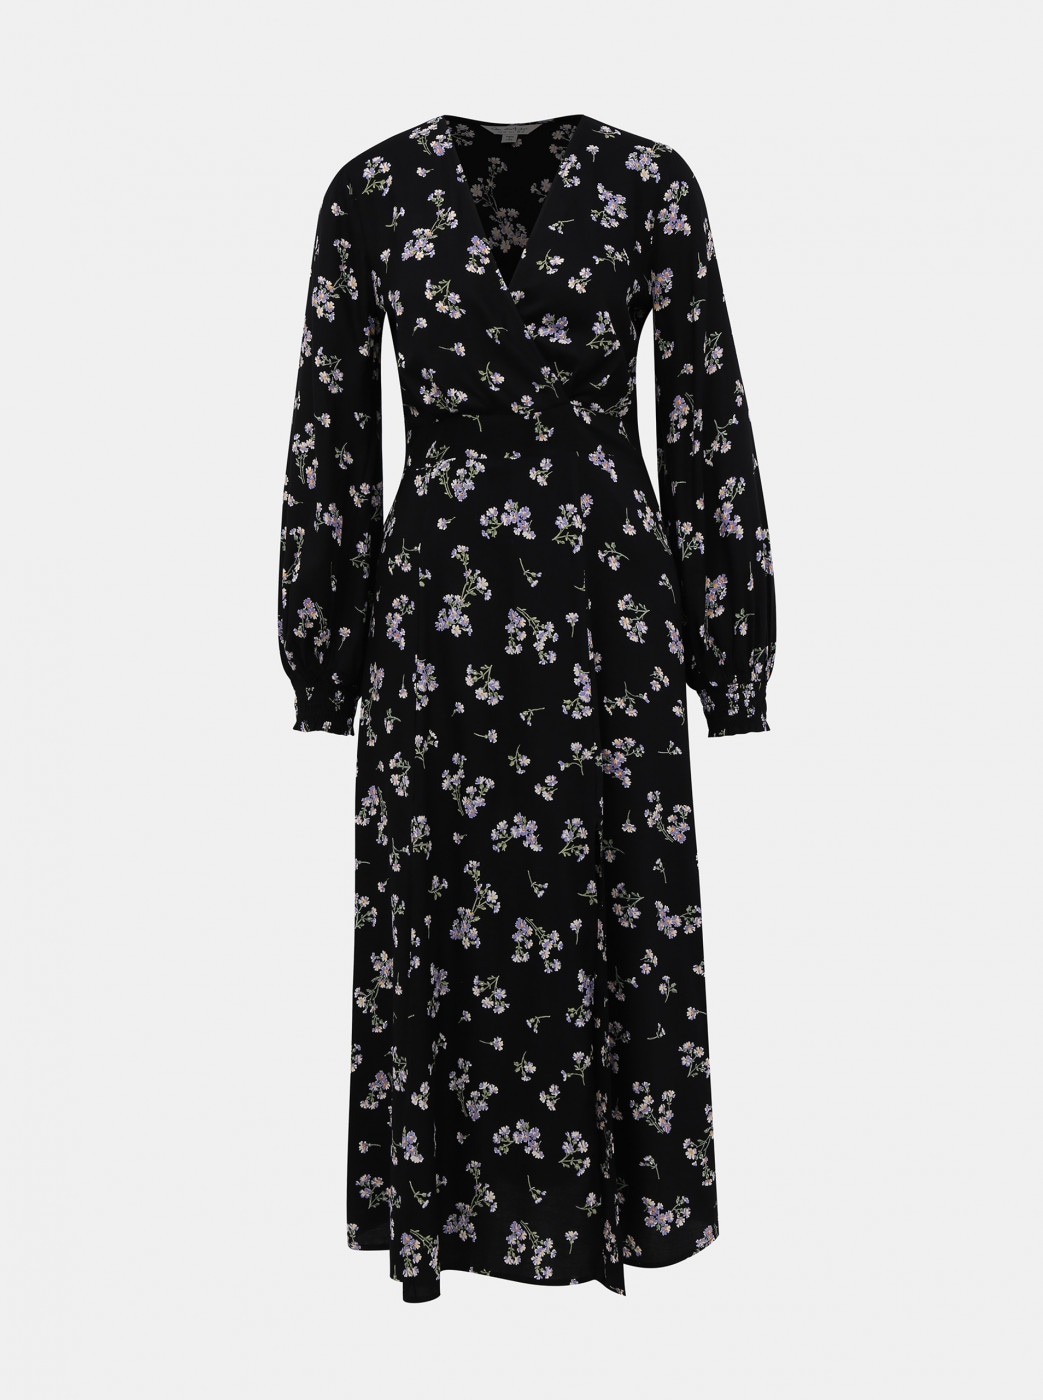 Miss Selfridge's Black Floral Maxi Dress